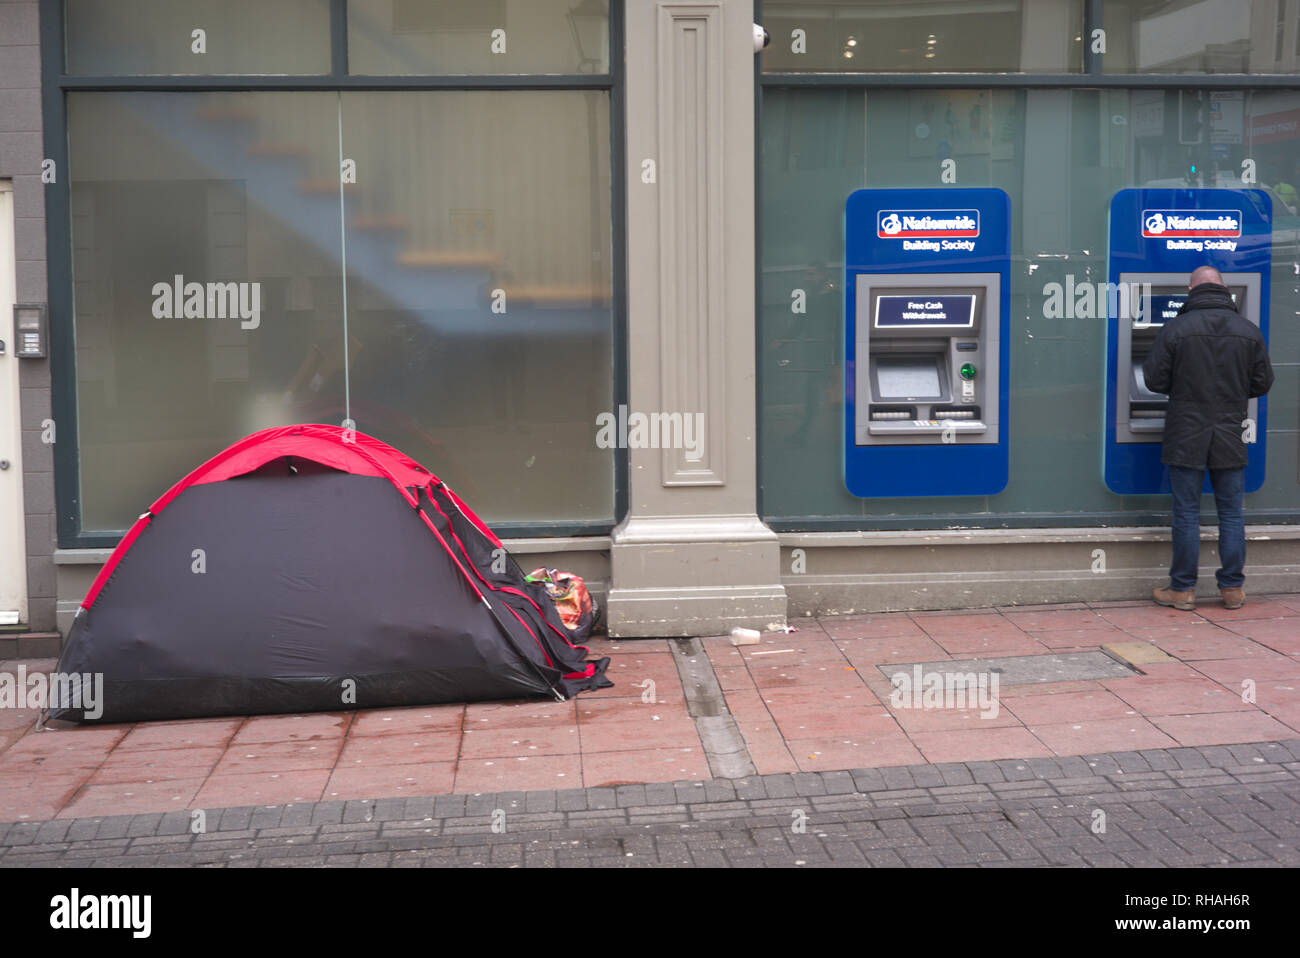 Brighton, England on February 01, 2019. Homeless's tent close to cash machine. - Stock Image